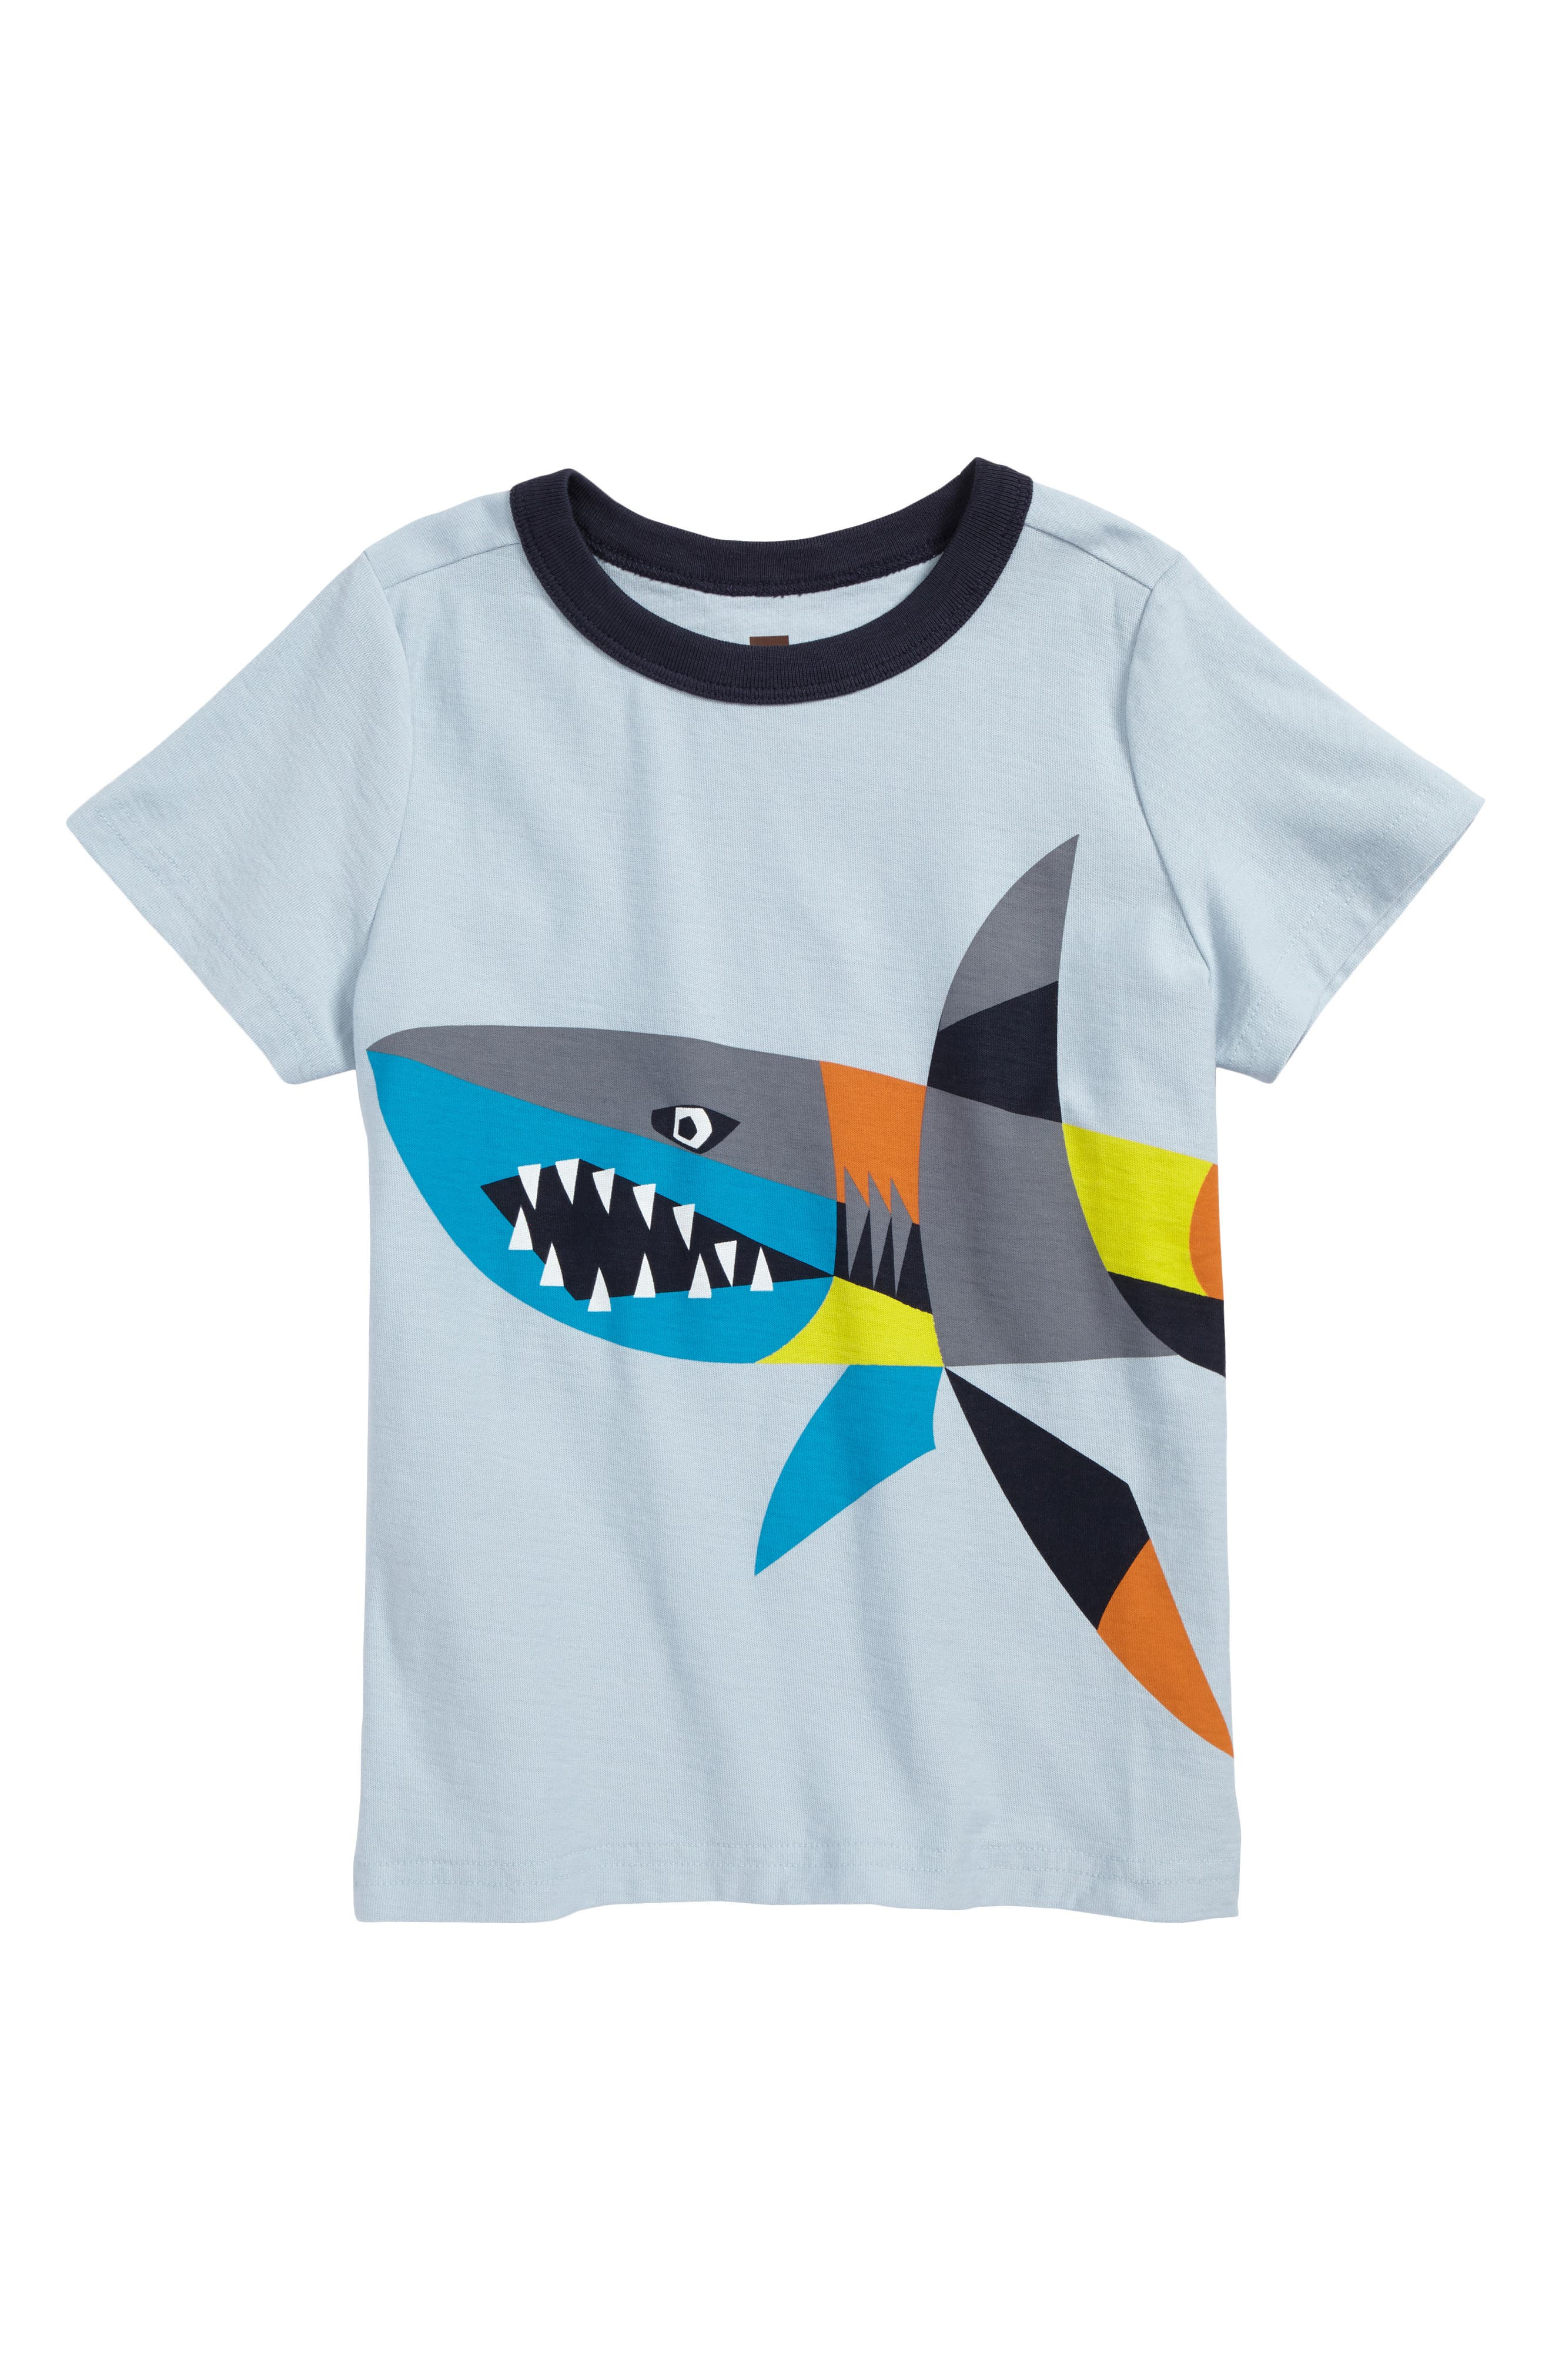 Main Image - Tea Collection Chomper T-Shirt (Toddler Boys & Little Boys)